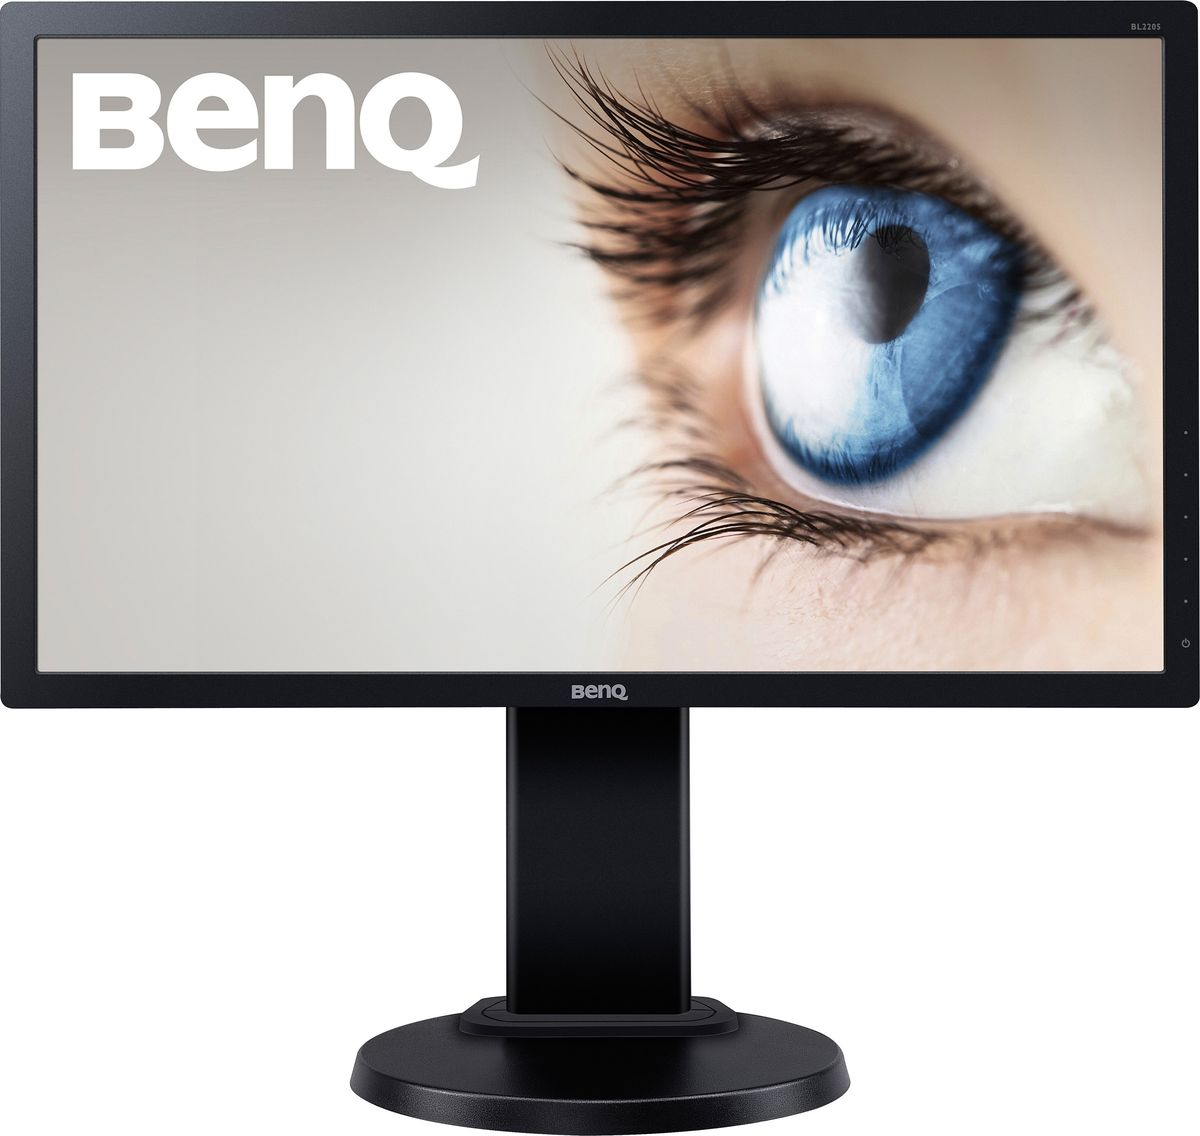 BenQ BL2205PT, Black монитор9H.LE9LA.TBEColor: Black; Size: 21.5W; Resolution:1920x1080; 16:9; Display Area(mm): 476.64X268.11; Brightness ( typ.): 250 nits; Contrast ( typ. ): 1000:1(DCR: 12M:1); Viewing angle (L/R;U/D) (CR>=10): 170/160; Response time(Tr+Tf) typ.: 5ms (2ms GtG); MPRT (Motion Picture Response time): No; Display Colors: 16.7 M; Color Gamut: 72%; Input connector: D-sub / DVI / DP1.2; Power consumption (On mode): 32W; Power saving mode: <0.5W; Senseye: Senseye3; AMA: Yes; Win8: Yes; HDCP: Yes; Speaker: 1Wx2; VESA Wall Mounting: 100x100mm; HAS:110mm; Swivel: 45/45; Tilt: -5~20; Pivot: 90°; Signal cable: VGA; Others: No; LED Backlight; Low Blue Light, Flicker-free; TCO 6.0; EPEAT: Silver